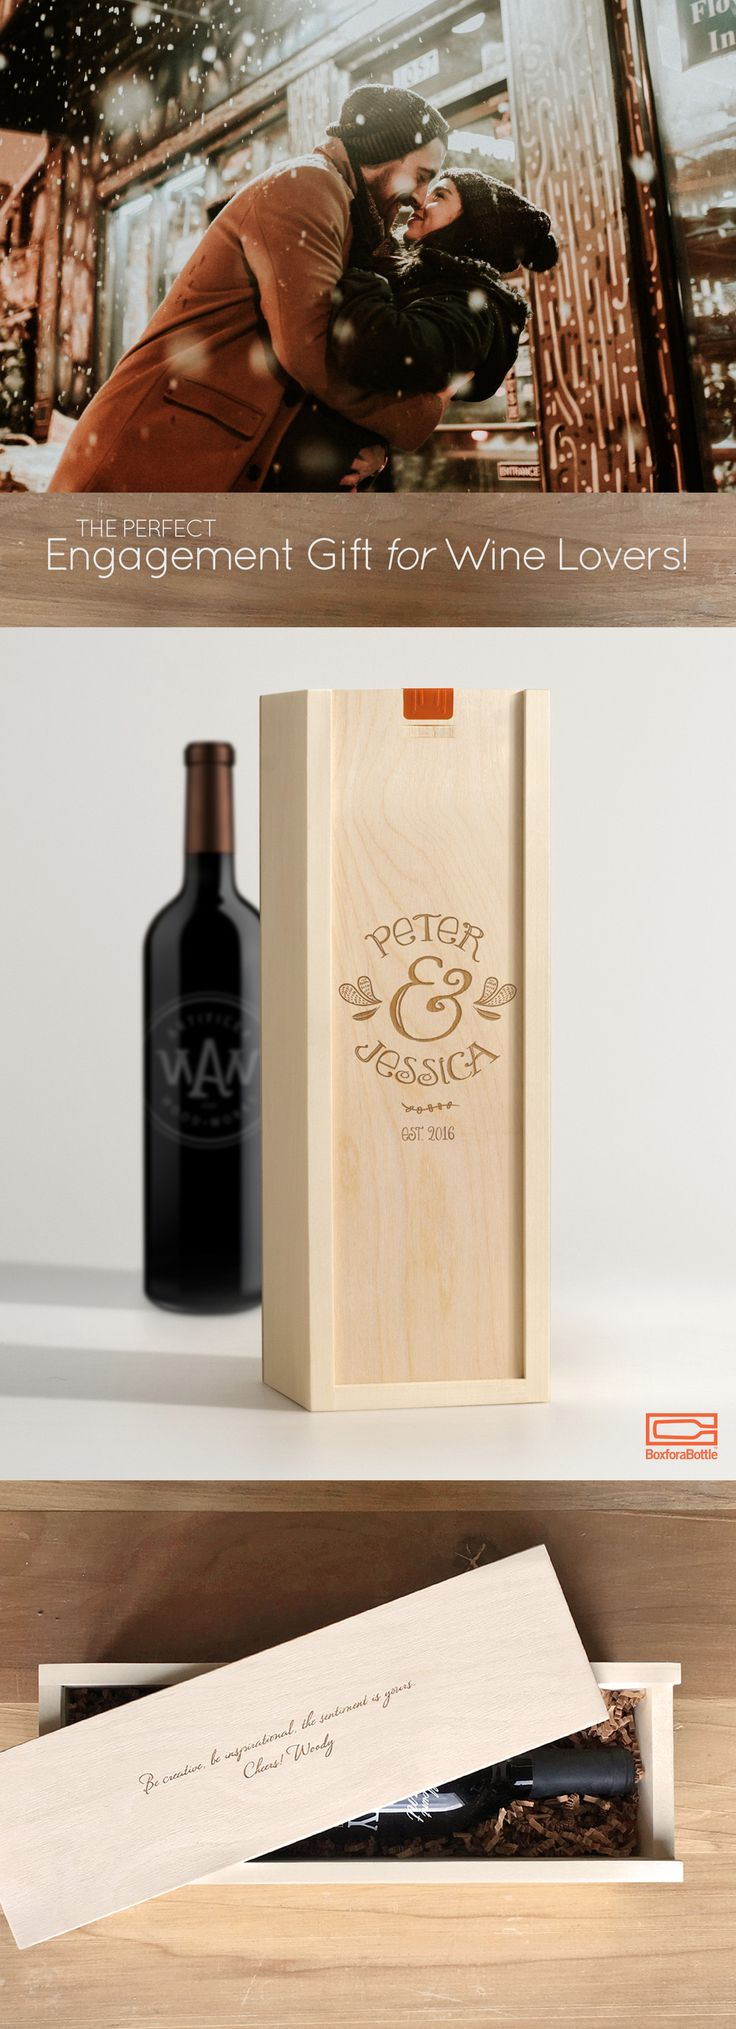 """Personalized Engagement Gifts for Wine Lovers! A keepsake they will cherish long after the wine is gone. Pictures : """"Oh Darling"""" wine box from BoxforaBottle. Cheers!"""